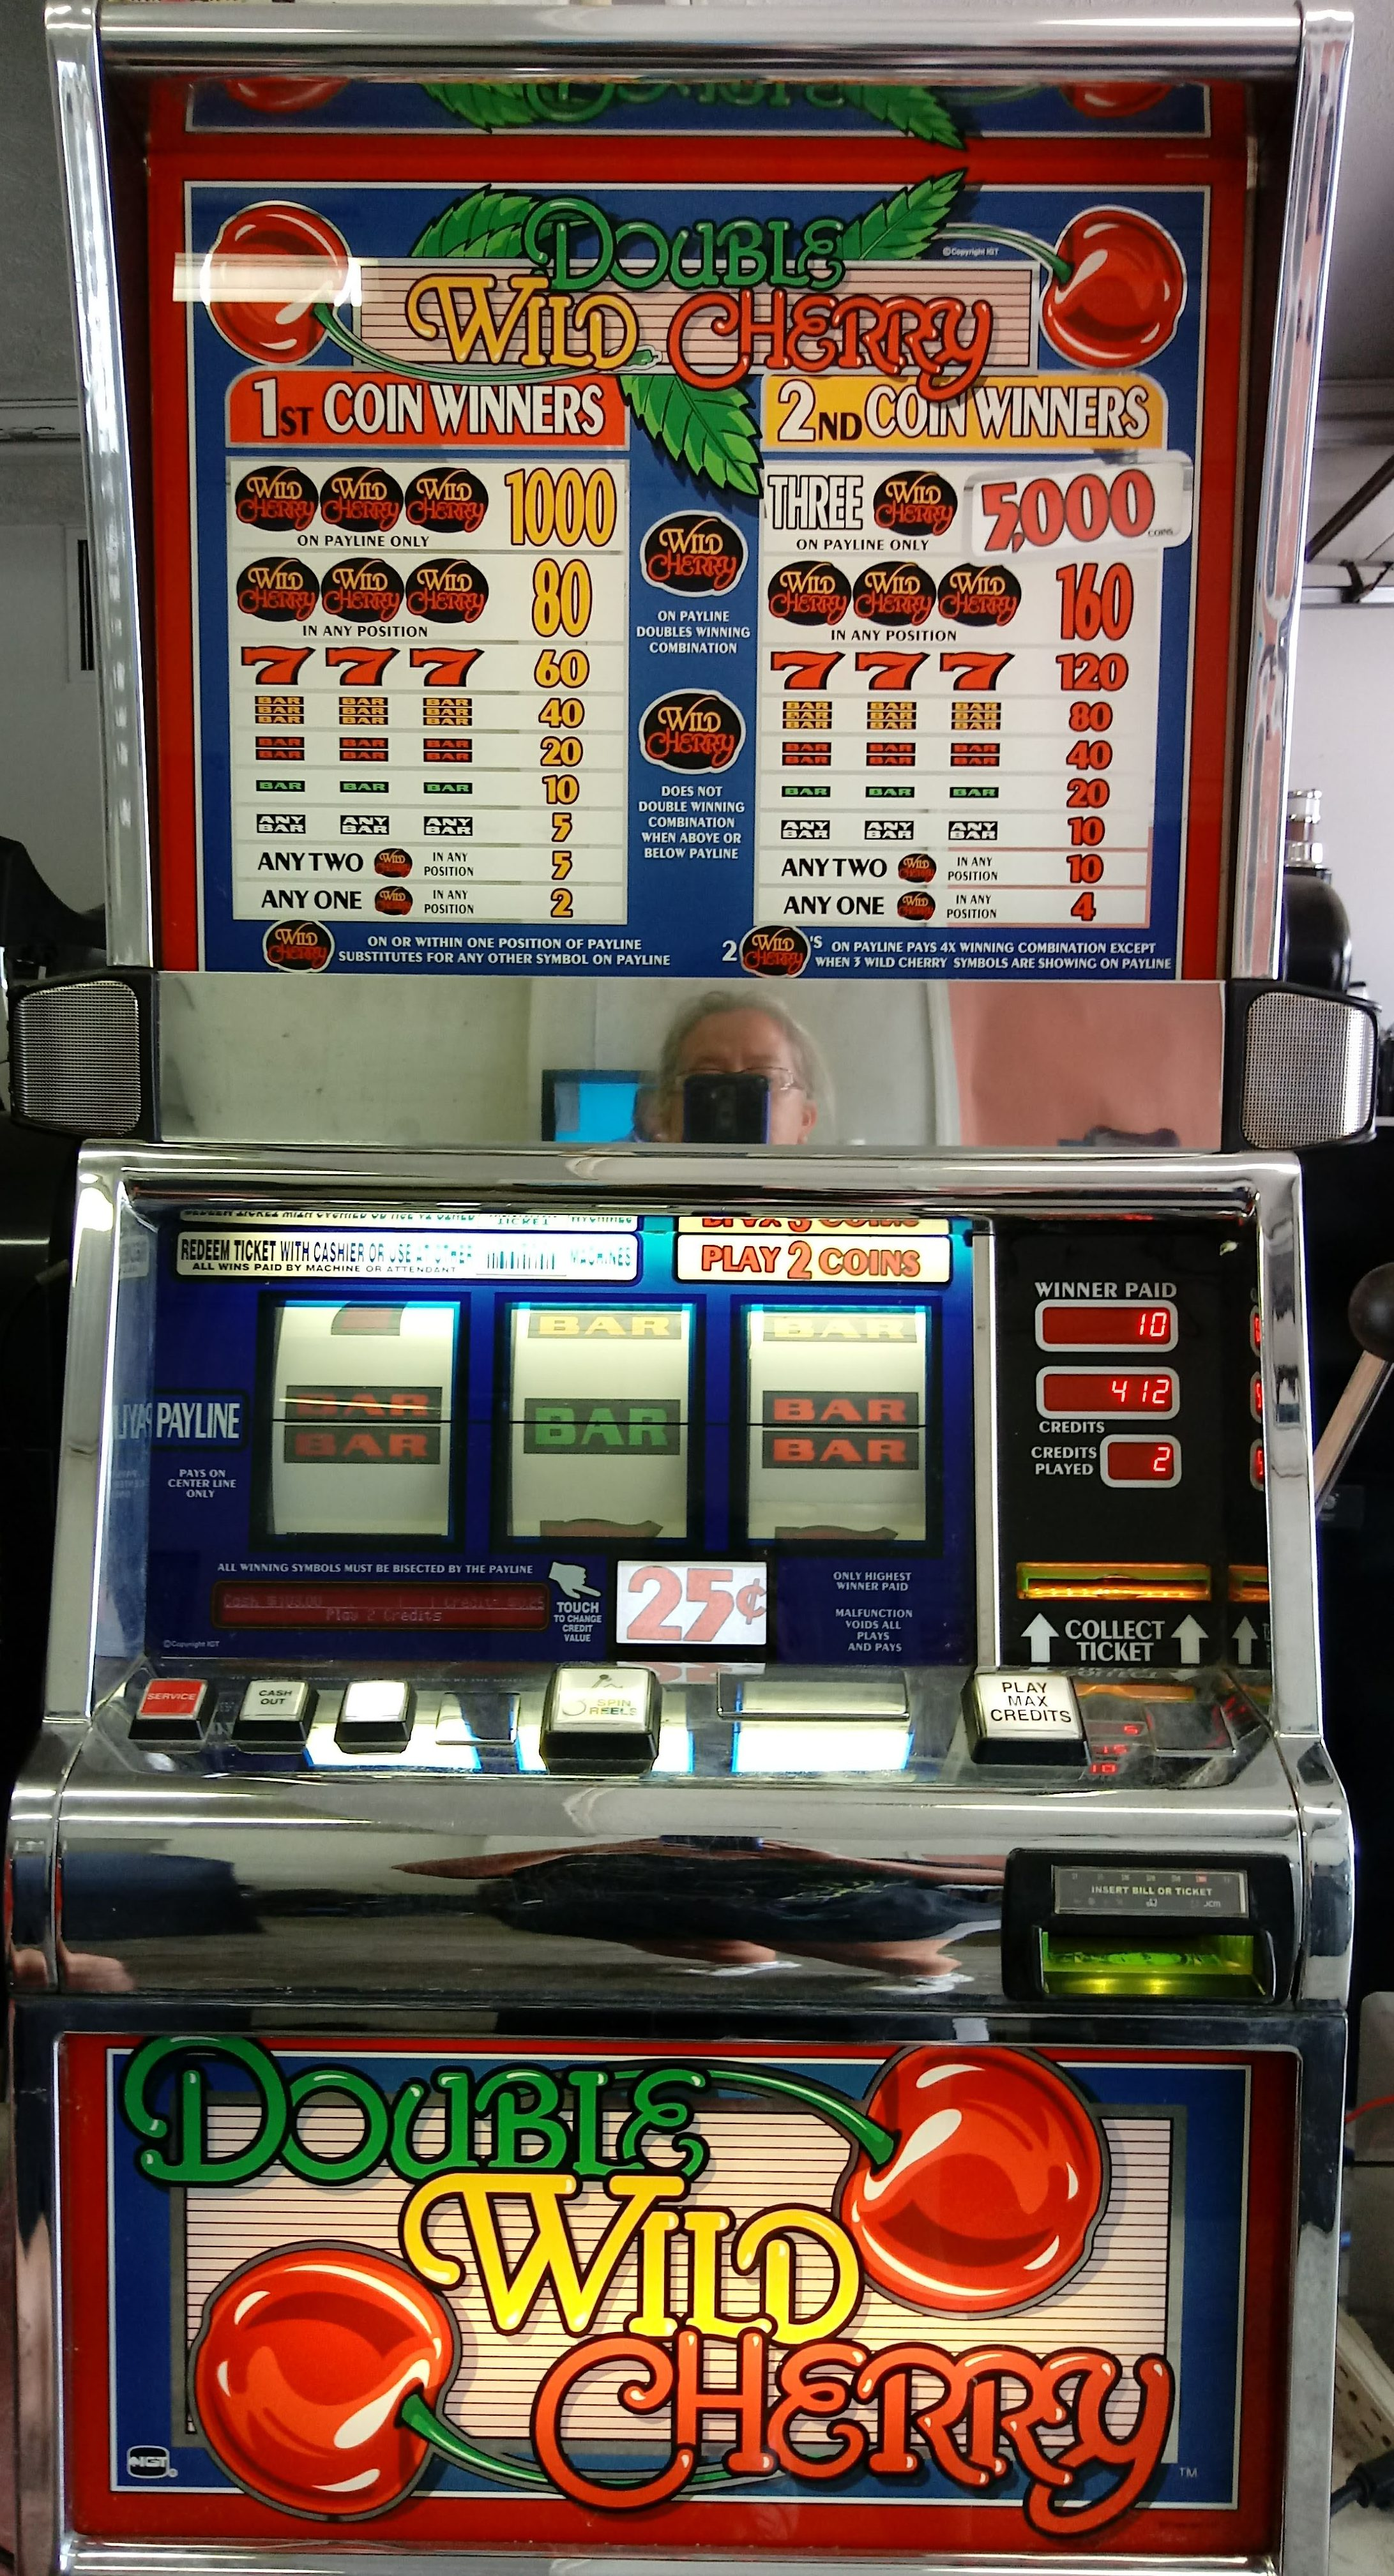 Cherries Slot Machine